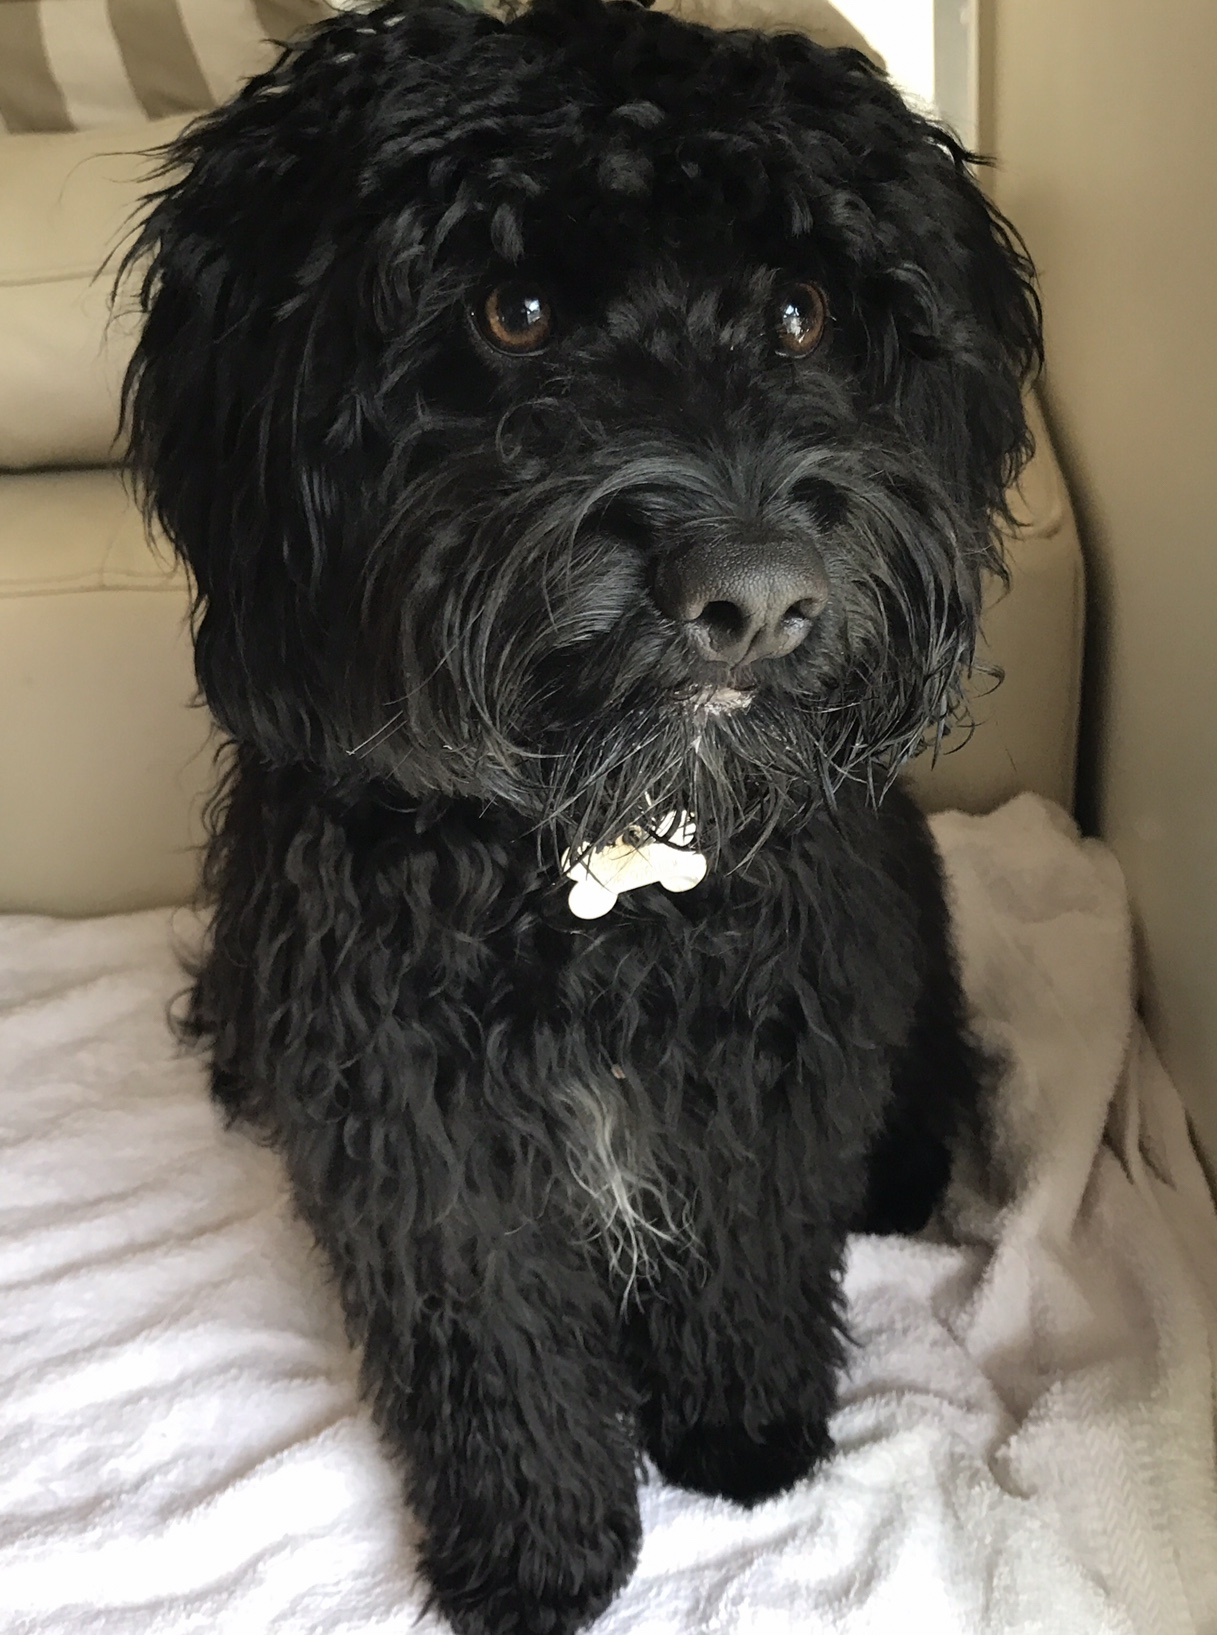 Kuro was one confident Cavoodle and a bundle of fun